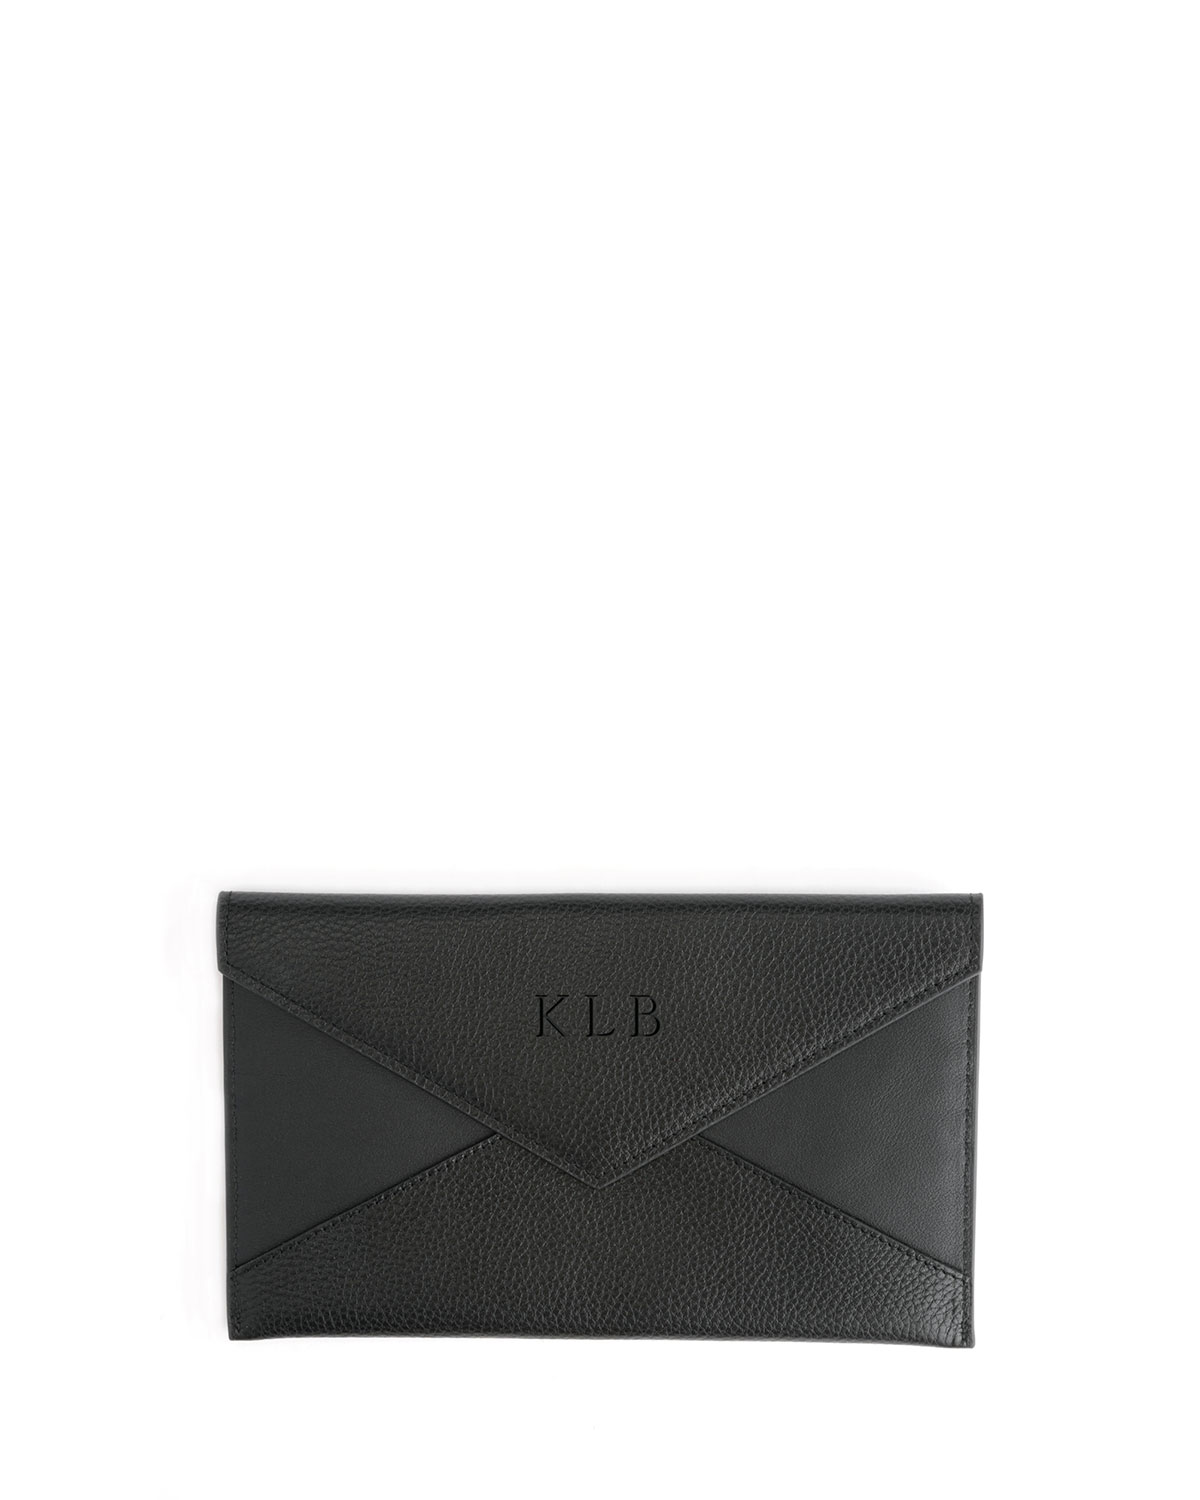 ROYCE New York Envelope Clutch